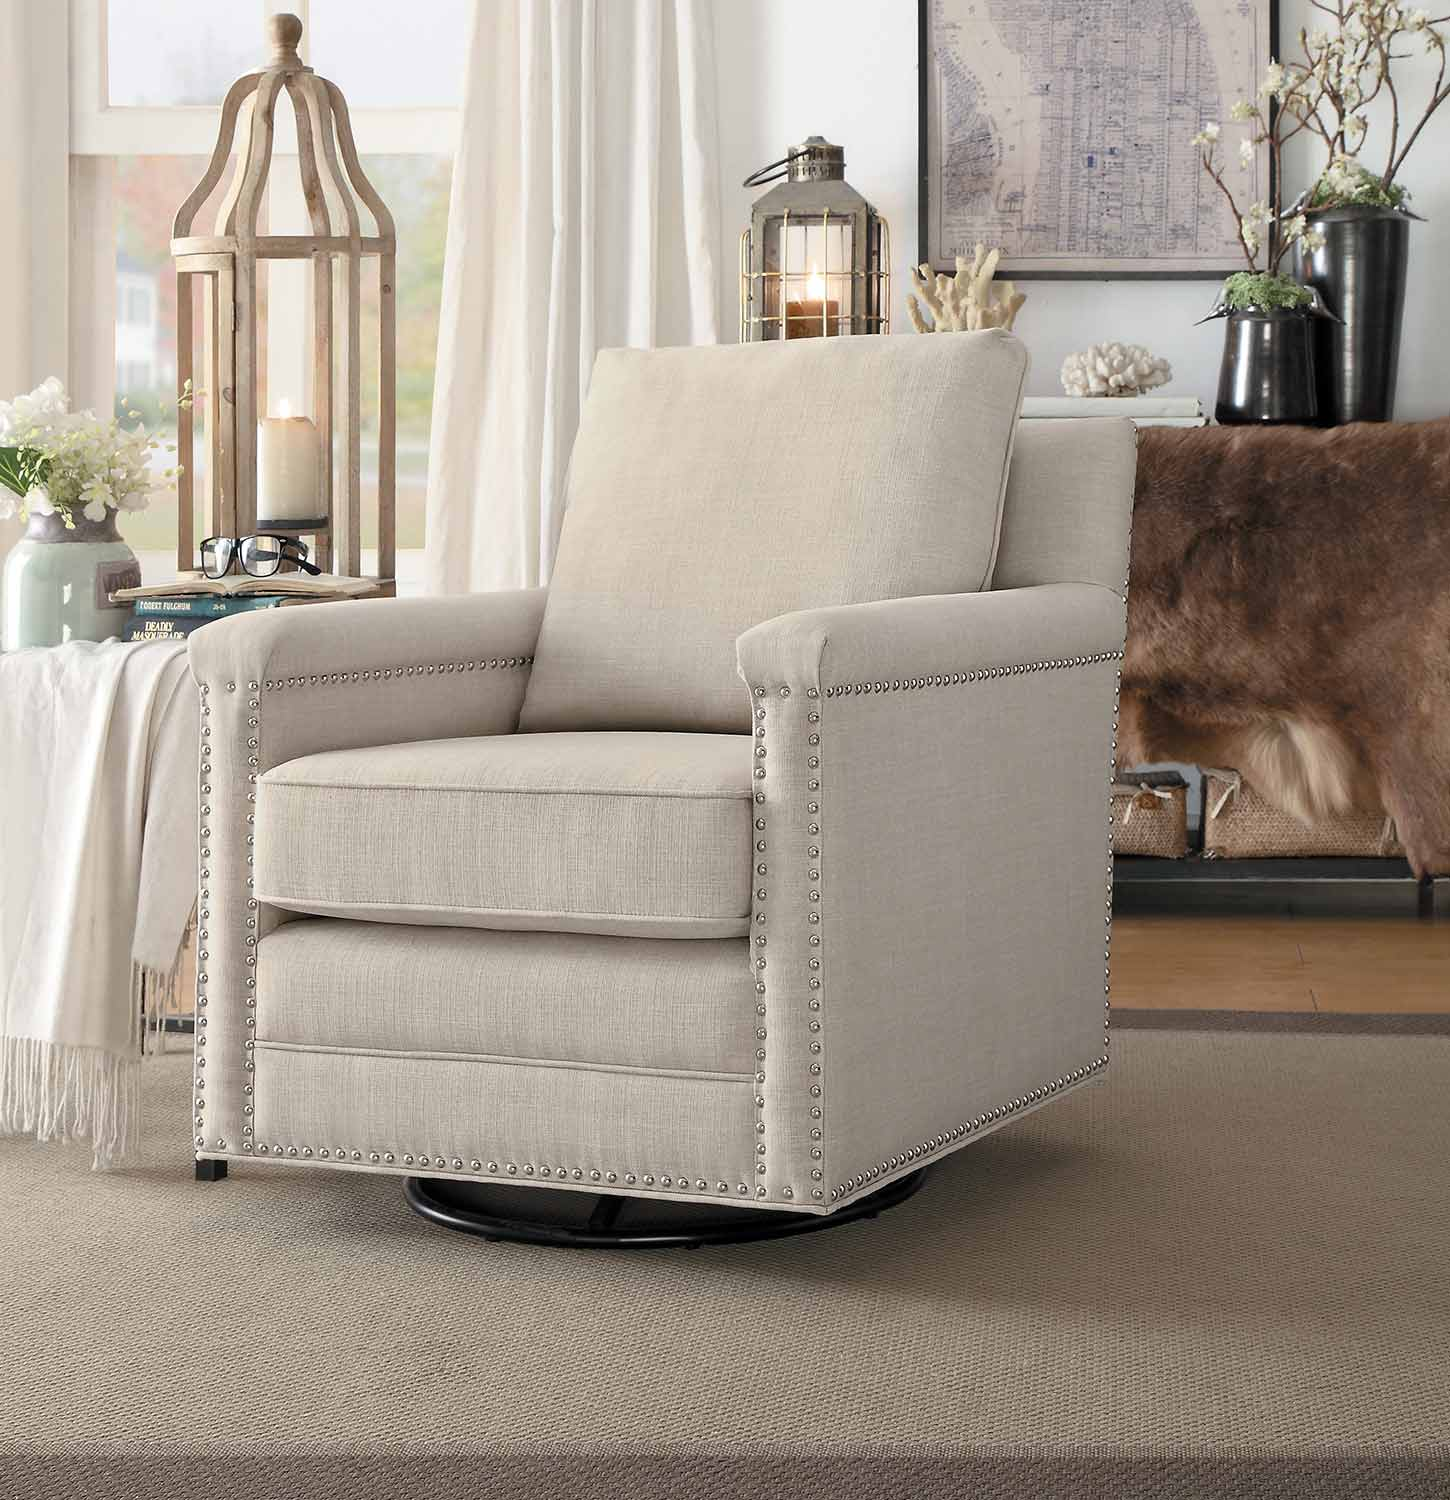 Homelegance Oreboro Swivel Chair - Beige